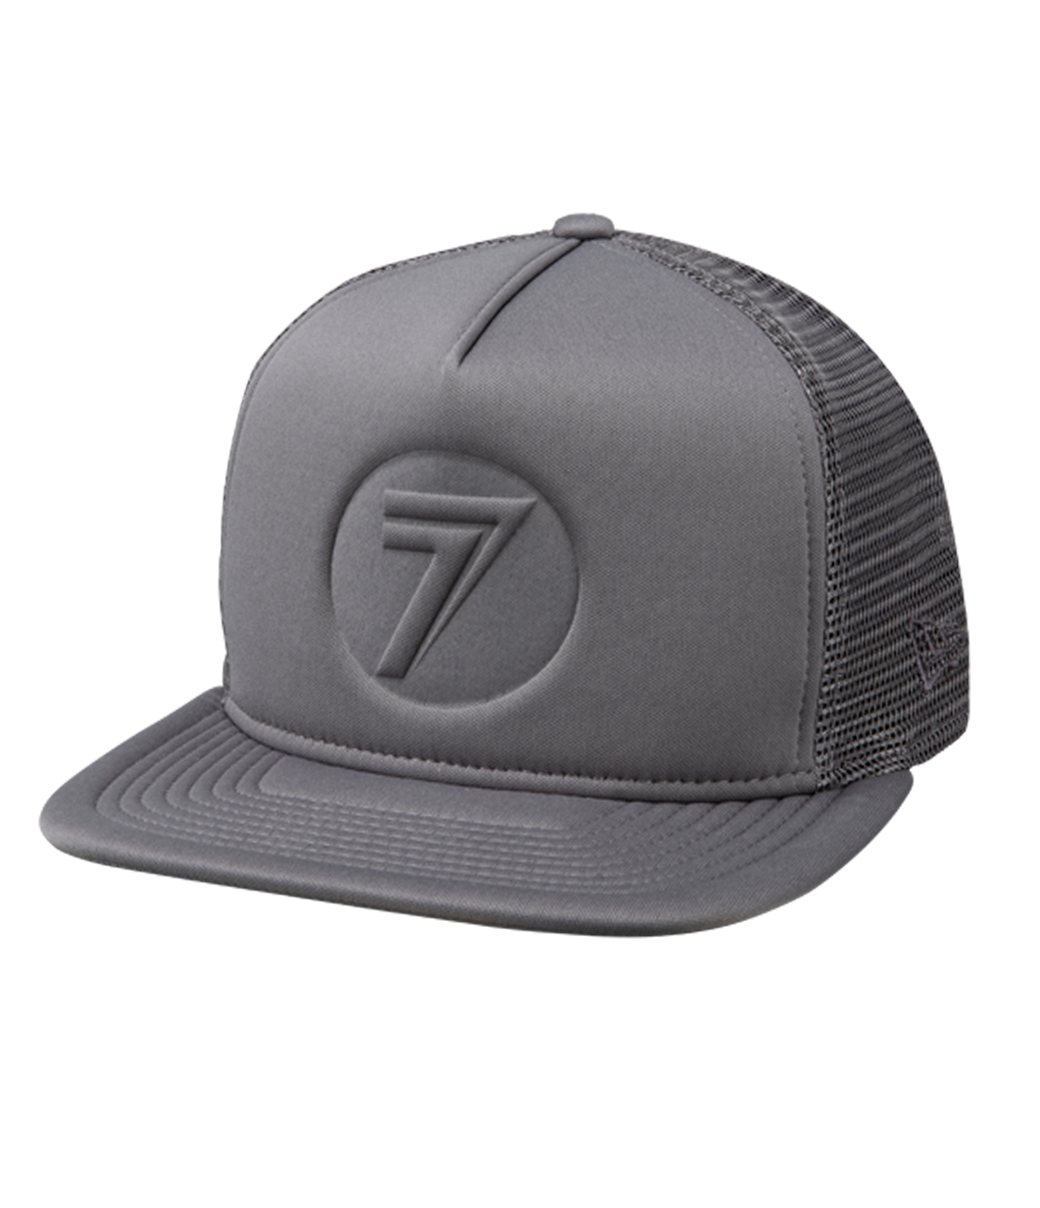 STAMP IT Hat - Storm Gray